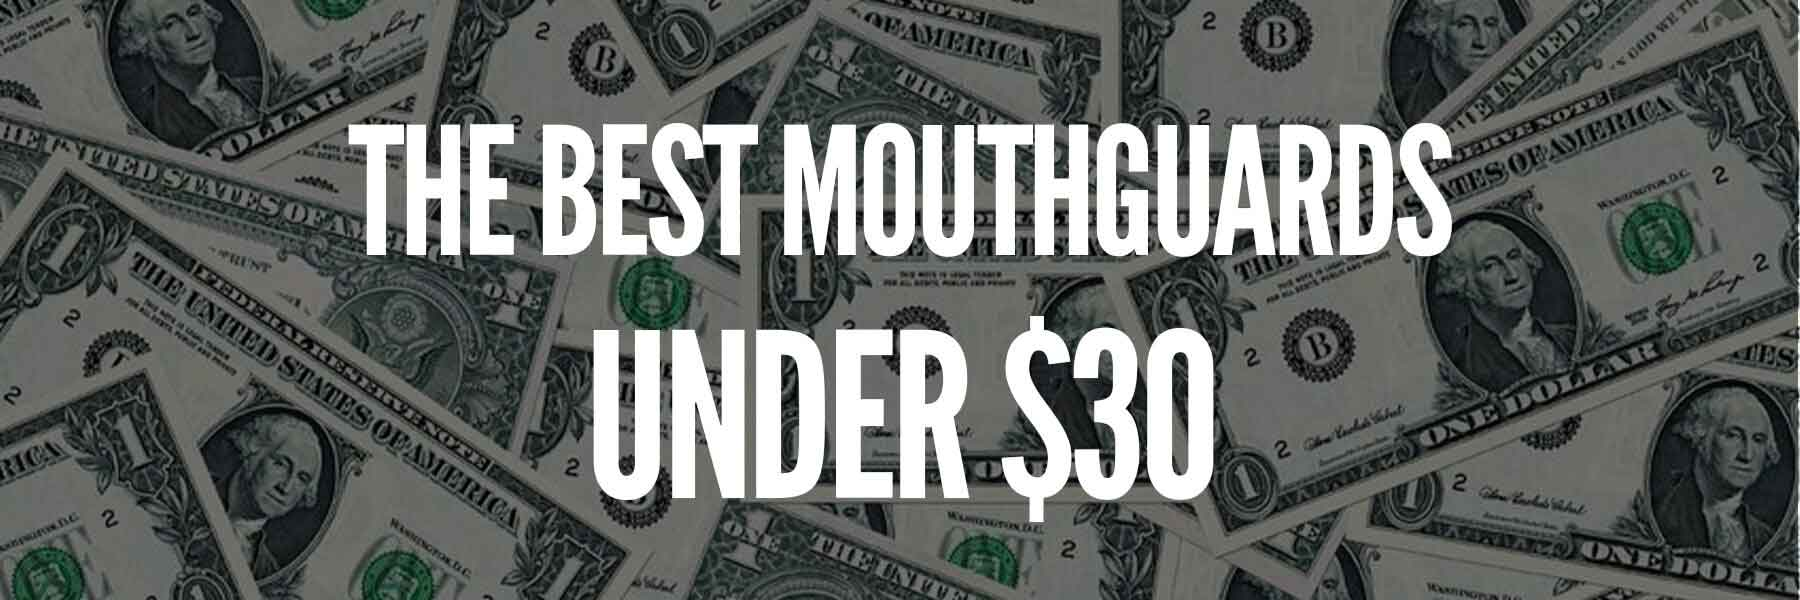 The Best Mouthguards Under $30